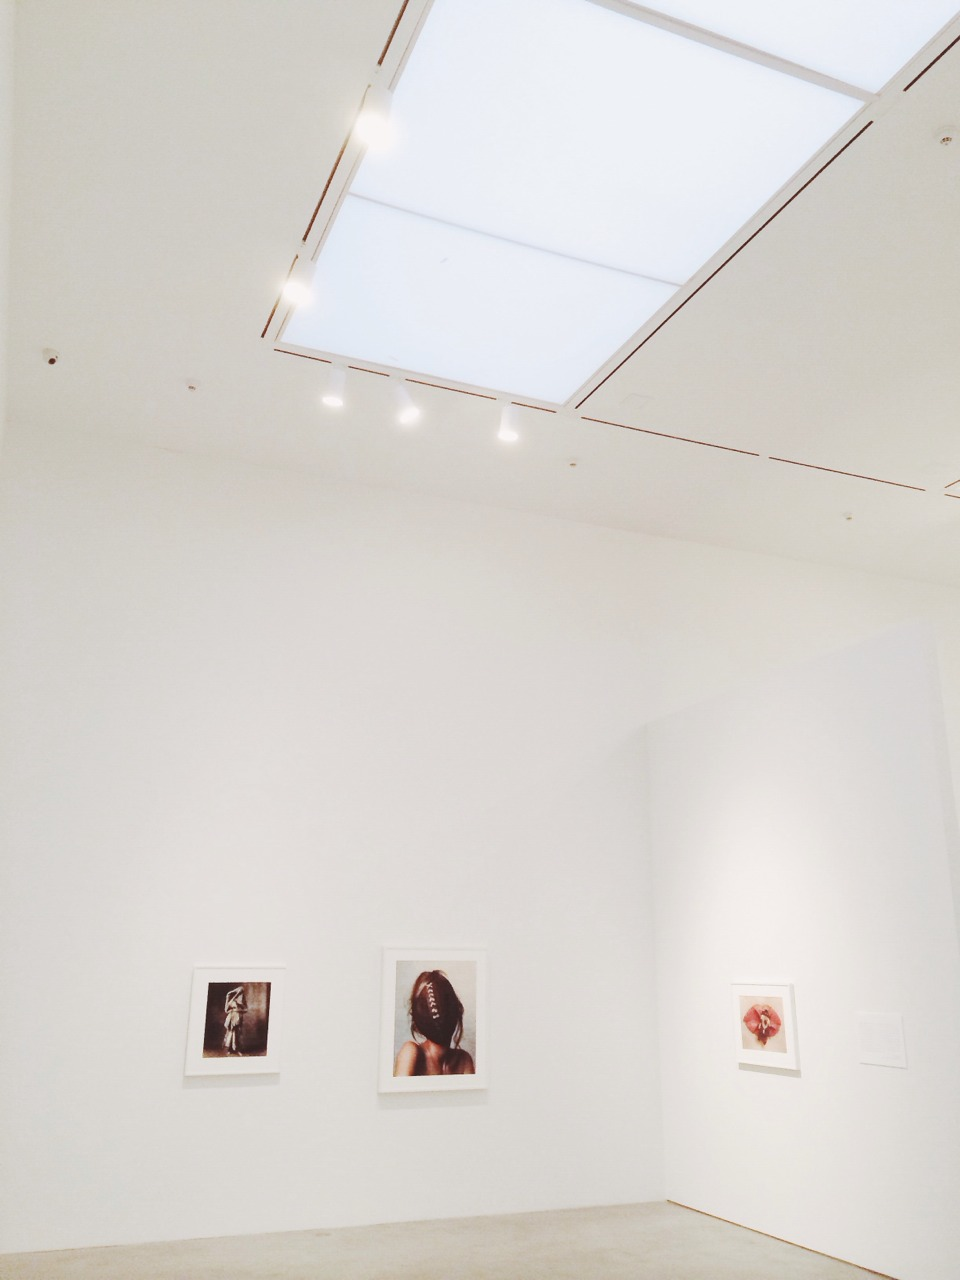 Irving Penn, The Pace Gallery New York City